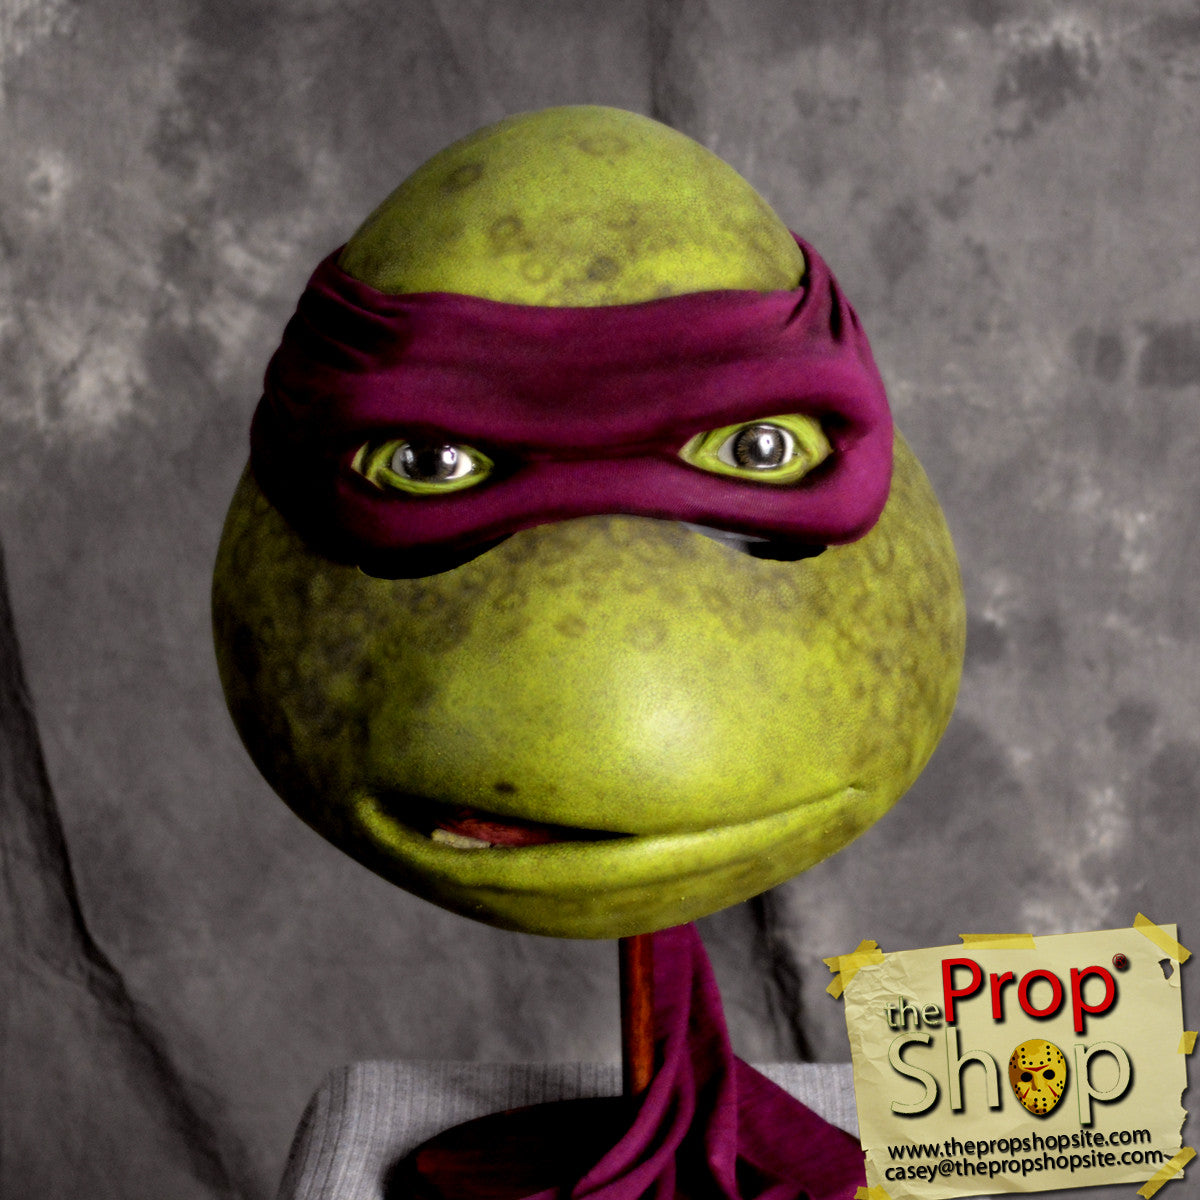 Elite Purple Movie Turtle Mask & The Prop Shop Costumes and More! | The Prop Shop